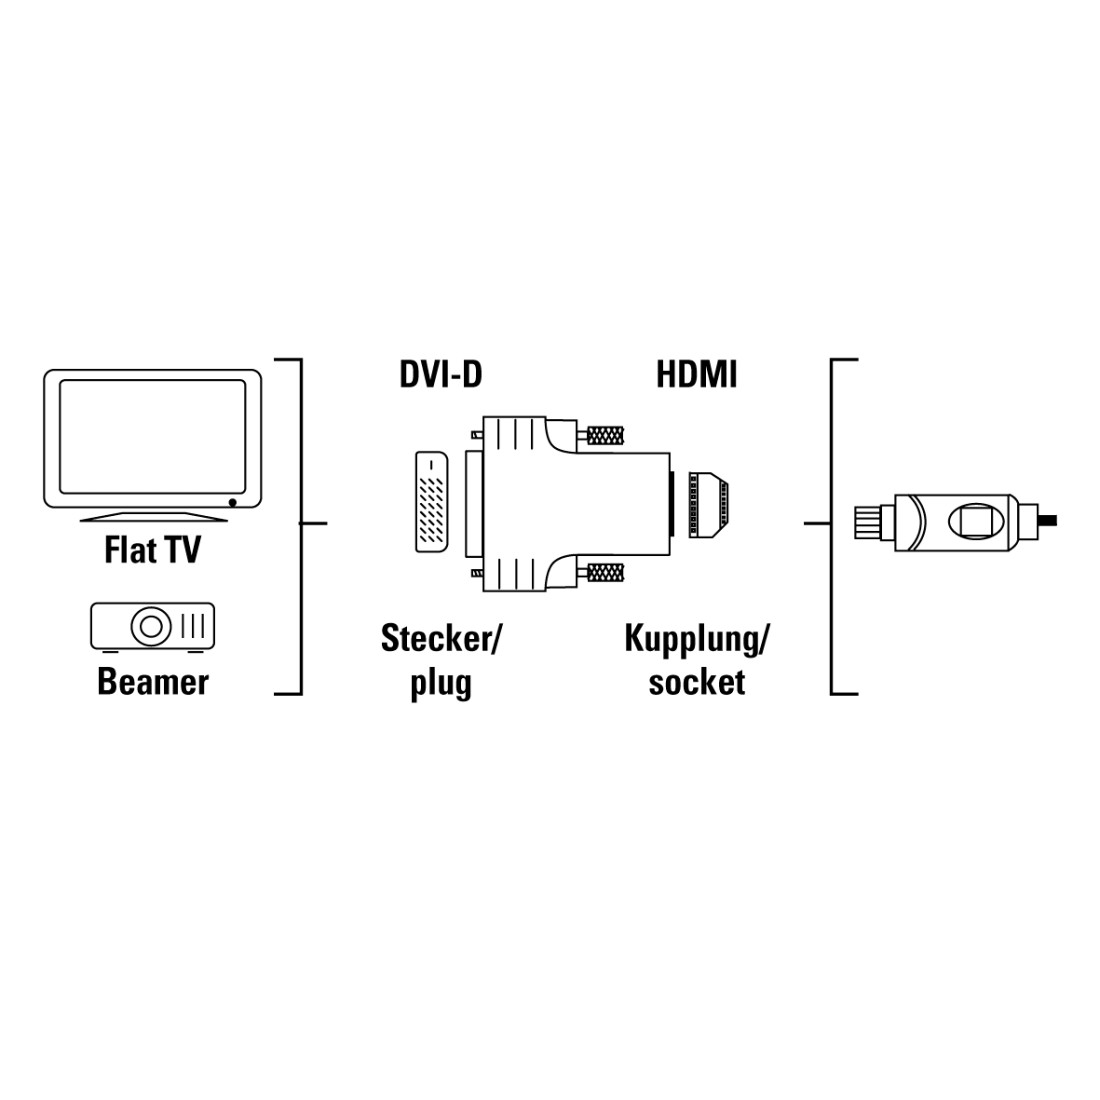 00034616 Hama Dvi Hdmi Adapter Plug Socket Shielded Wiring Diagram Stx High Res Line Drawing